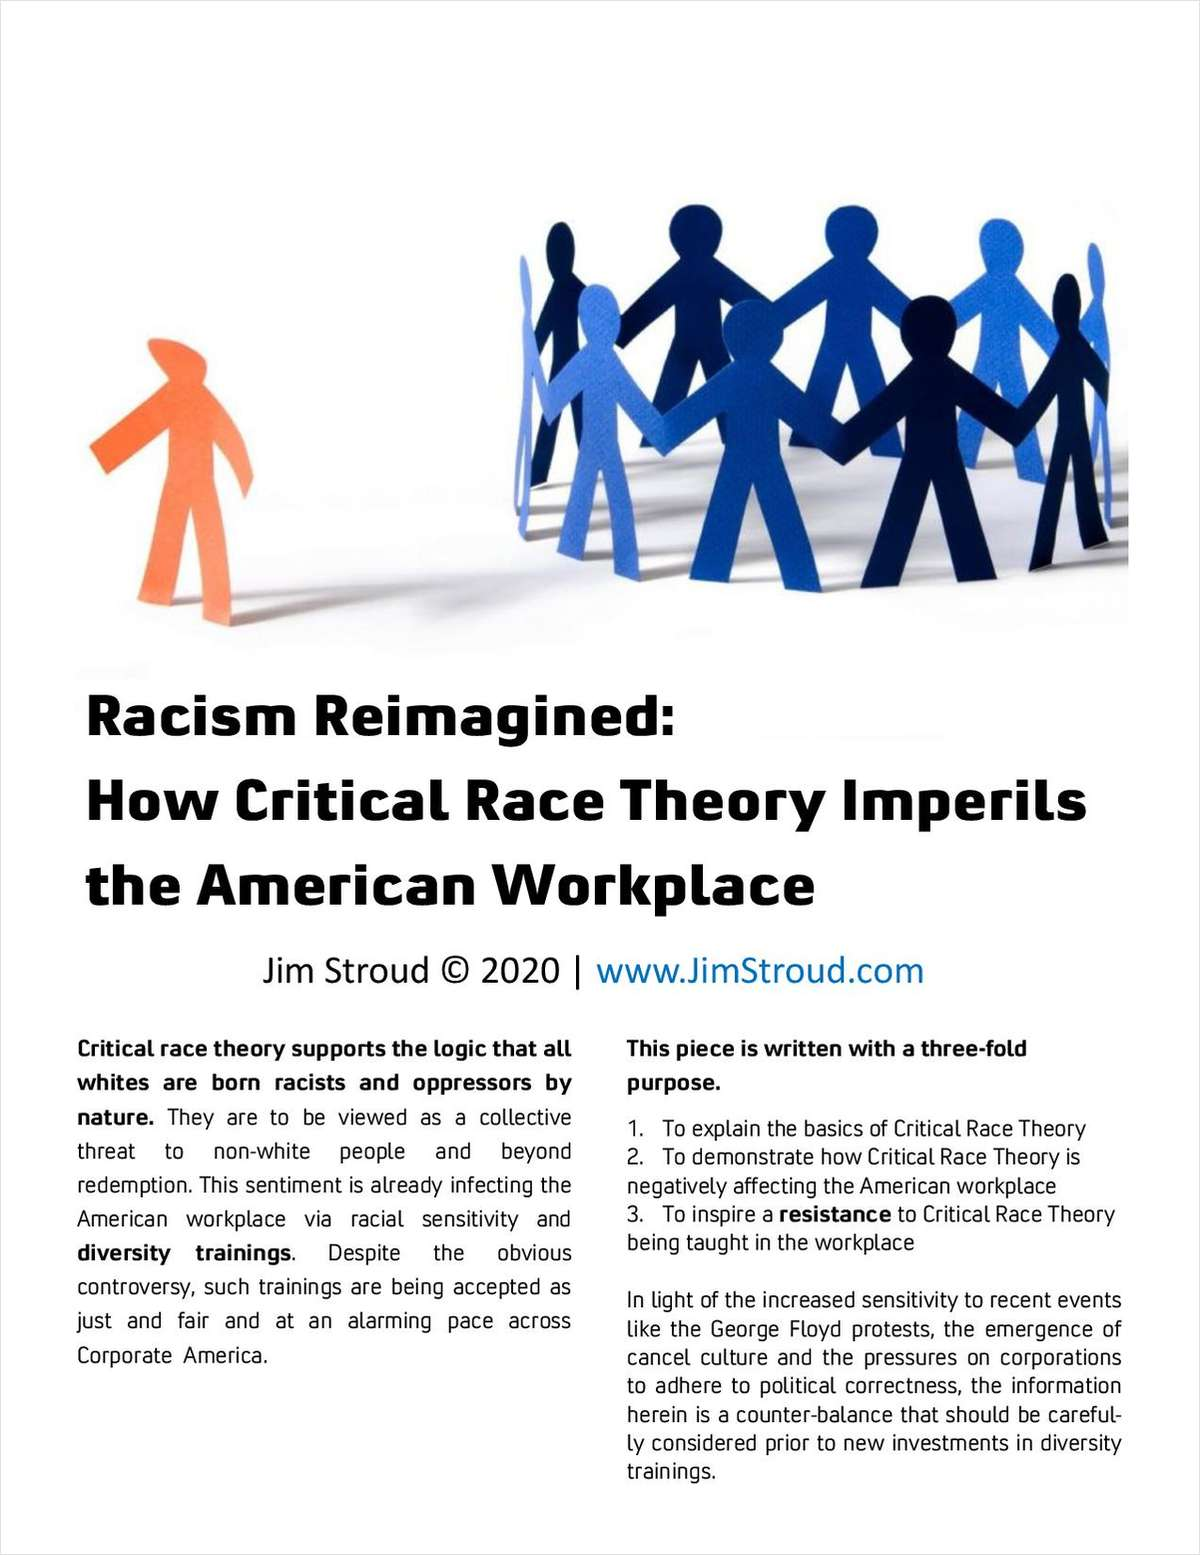 Racism Reimagined: How Critical Race Theory Imperils the American Workplace